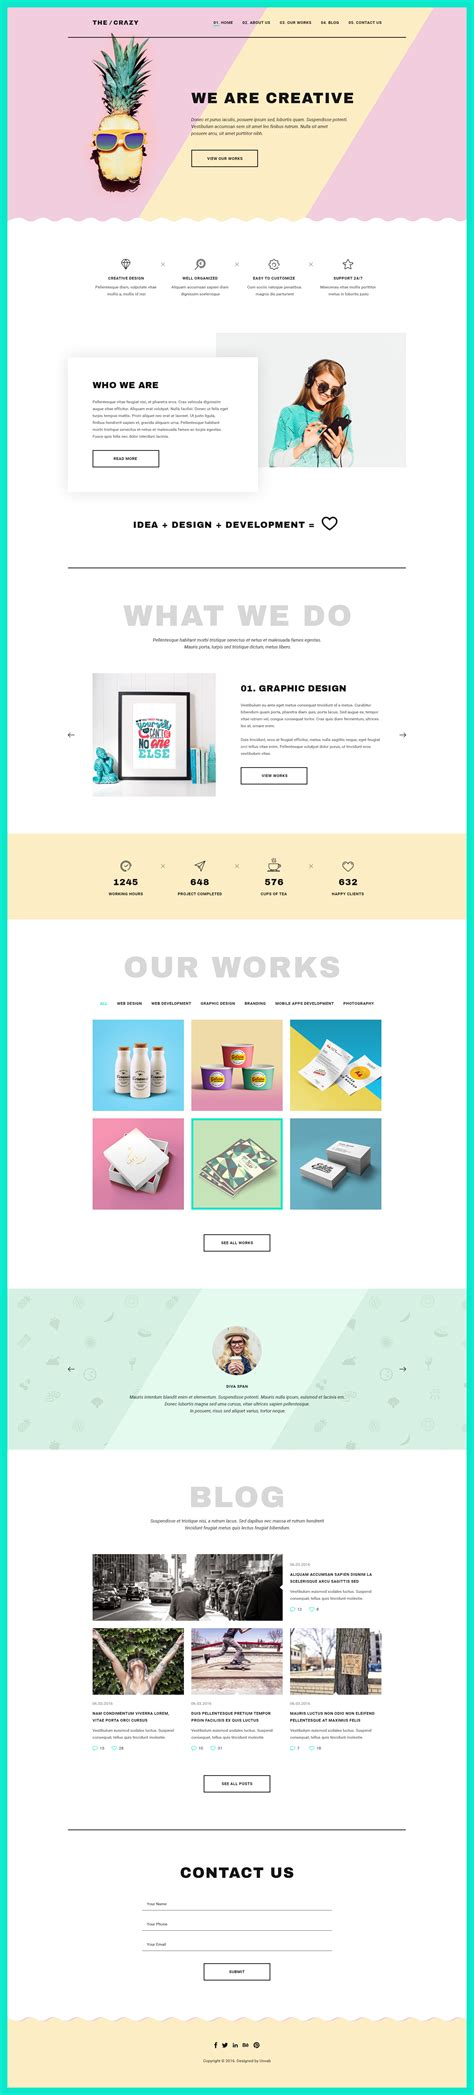 creative agency template the creative agency psd template by unvab